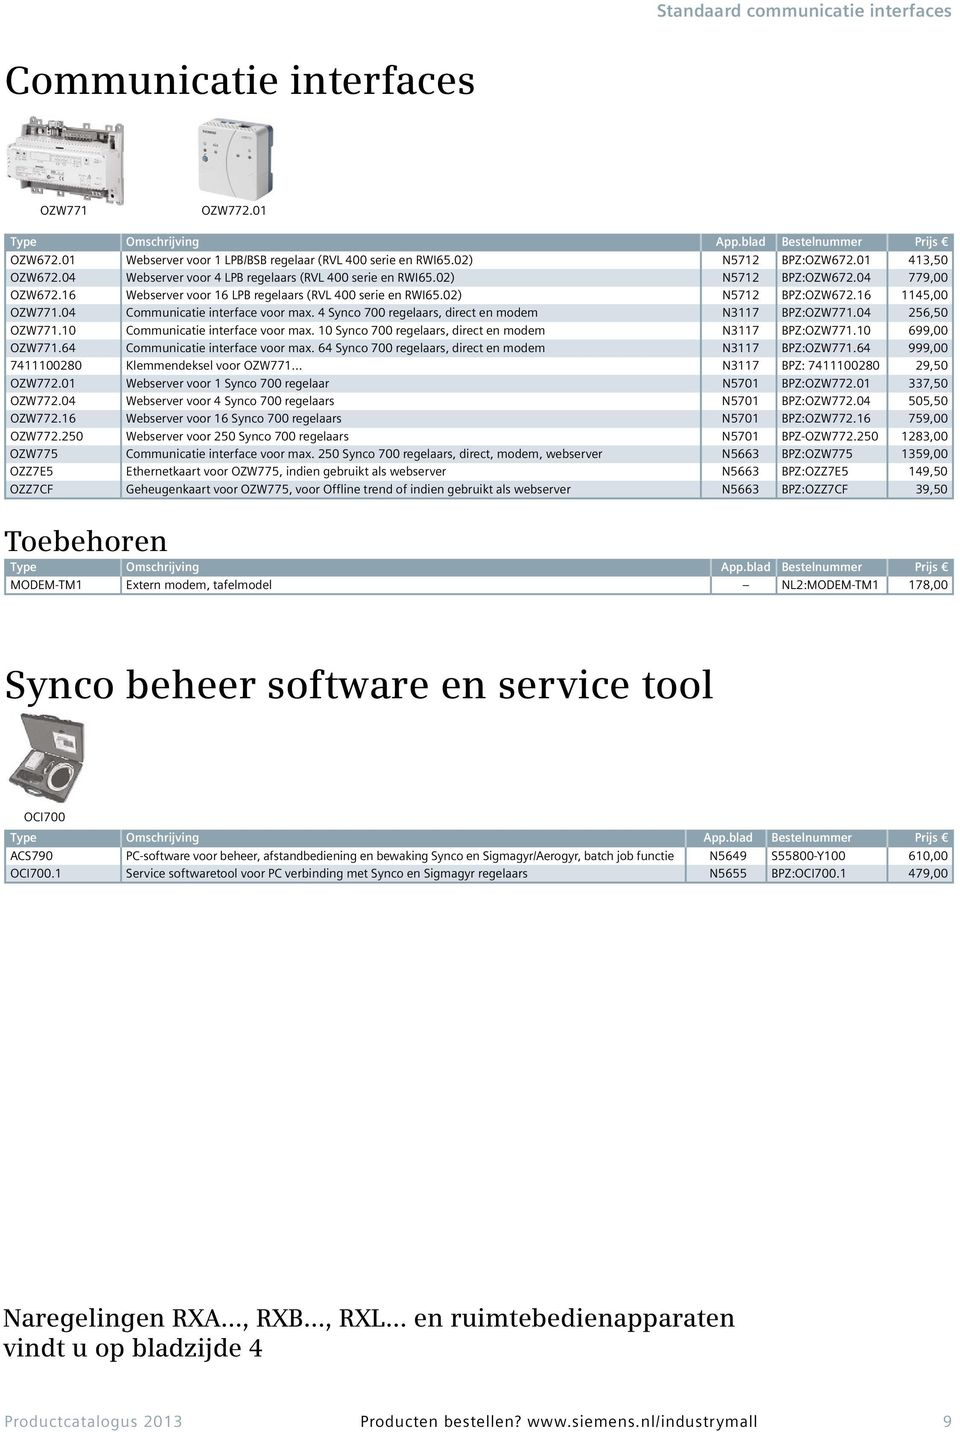 04 Communicatie interface voor max. 4 Synco 700 regelaars, direct en modem N3117 BPZ:OZW771.04 256,50 OZW771.10 Communicatie interface voor max.